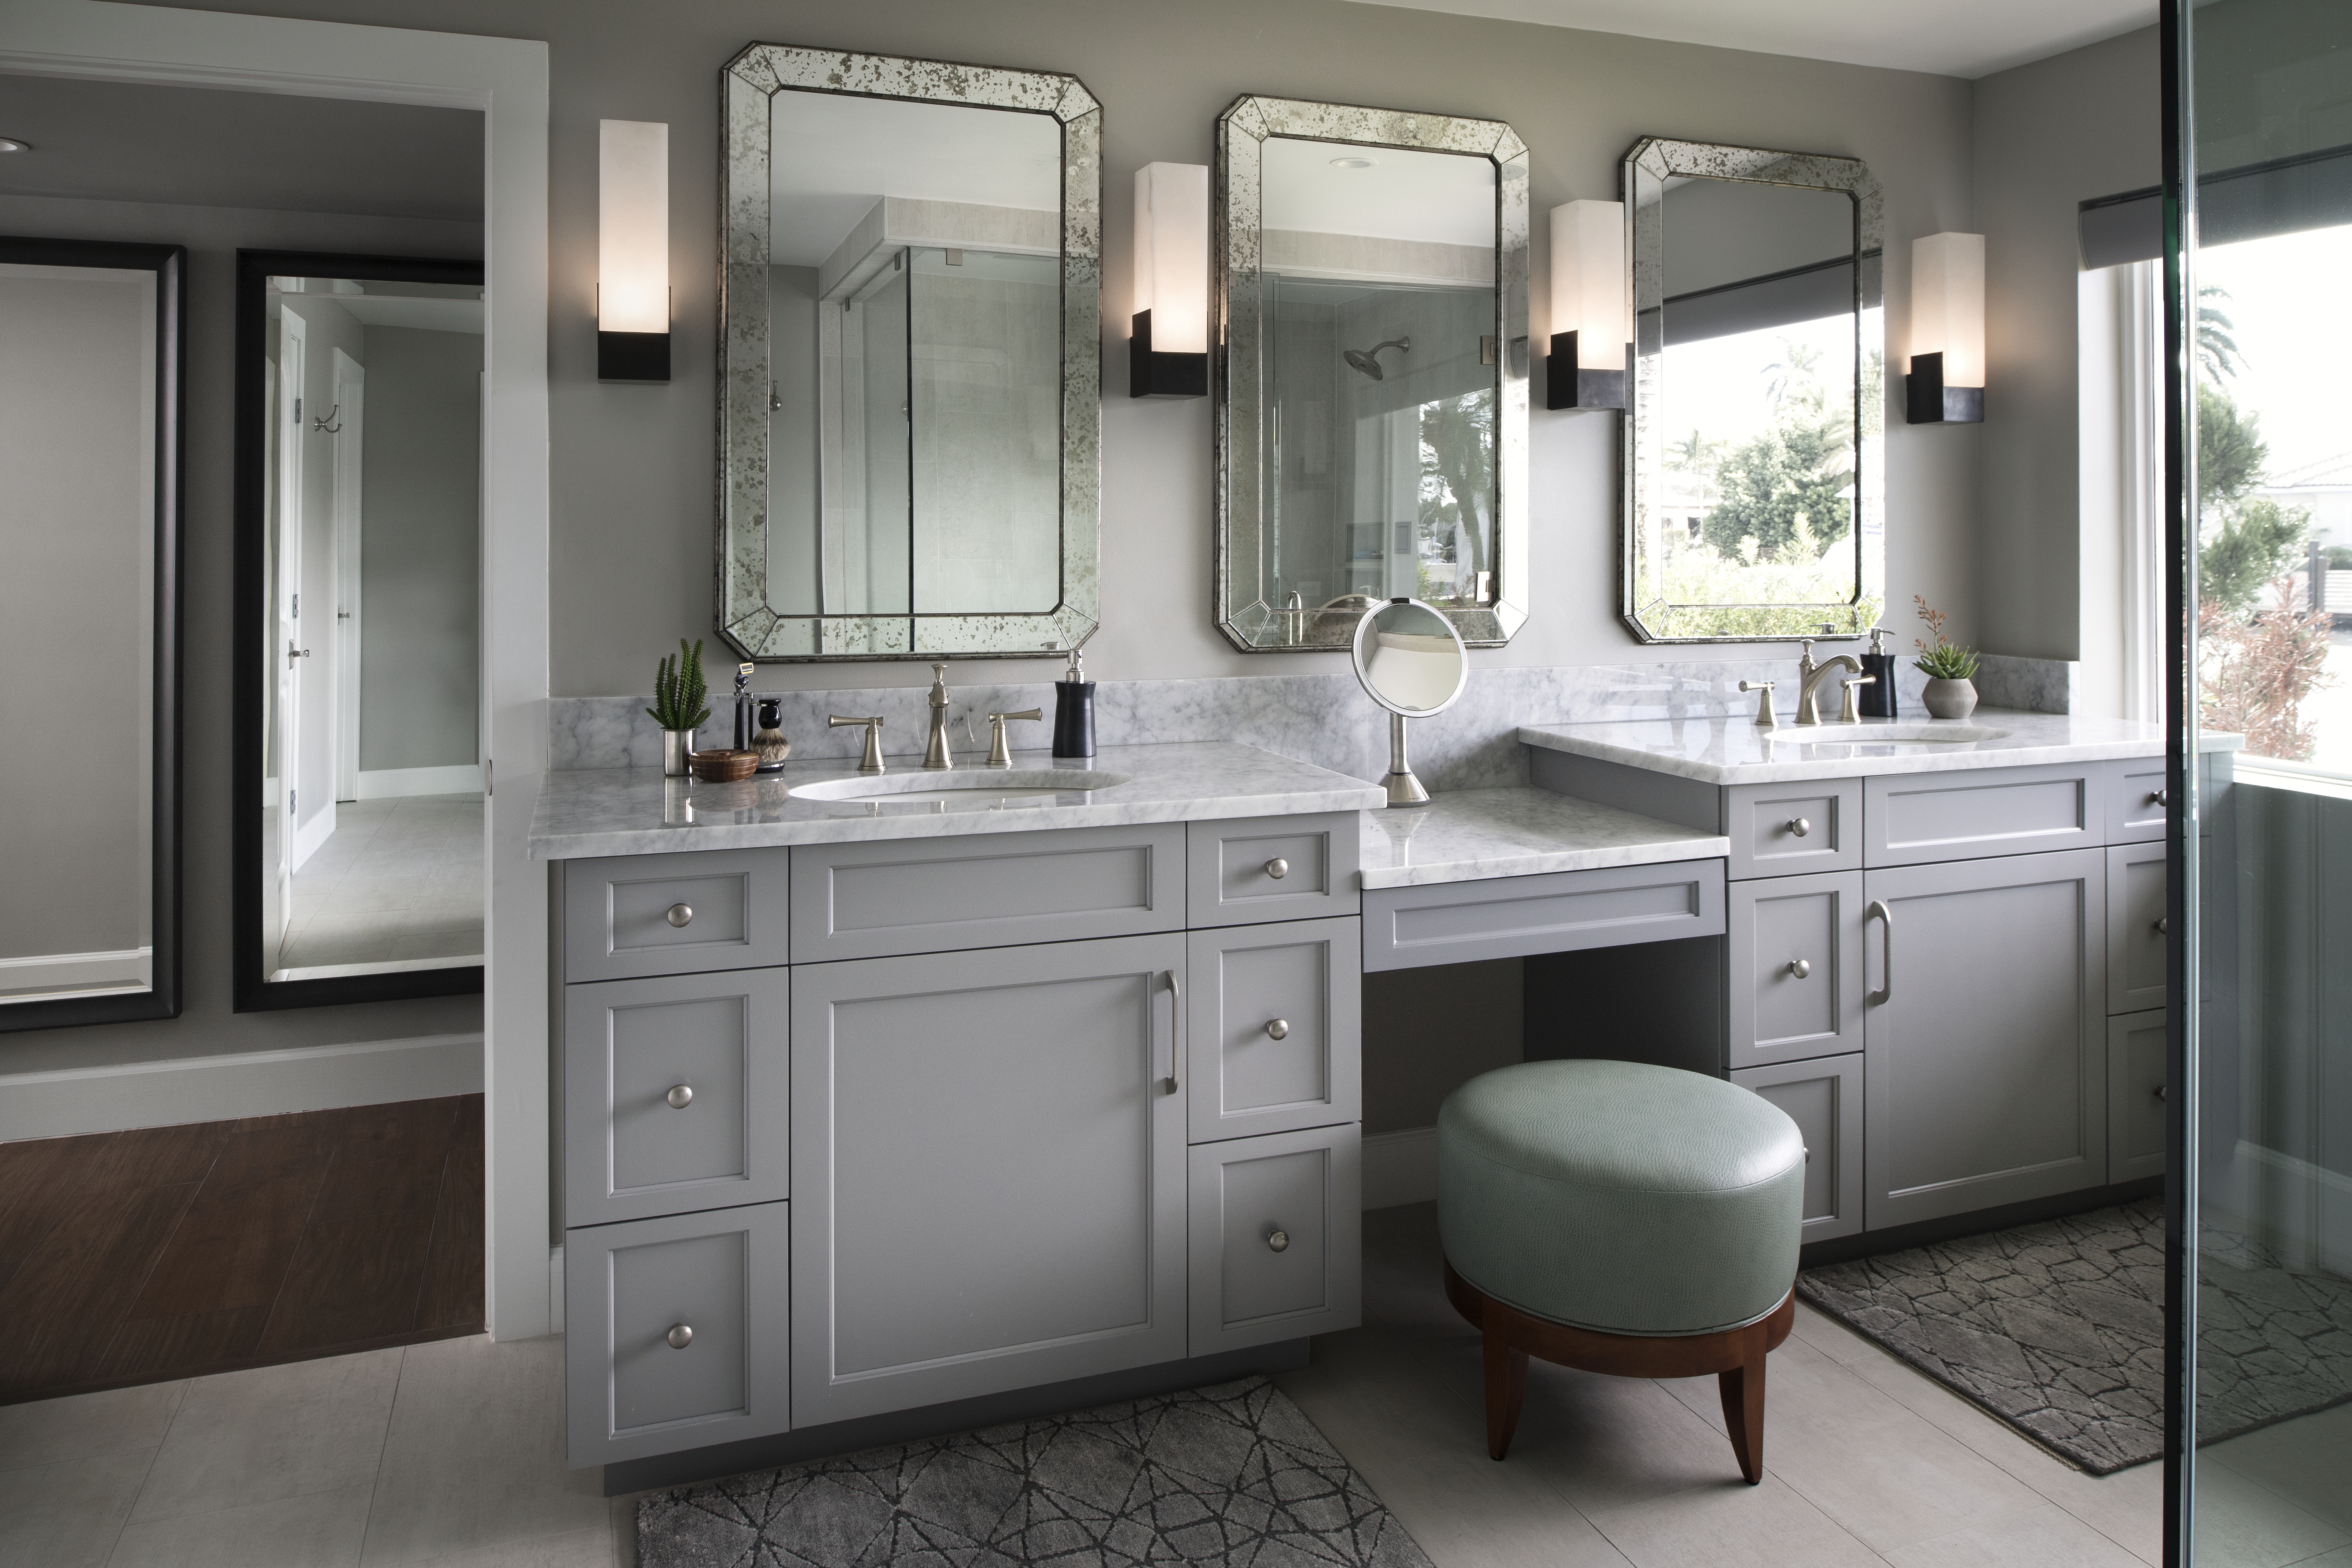 Grand Canal master bathroom by Brianna Michelle Design